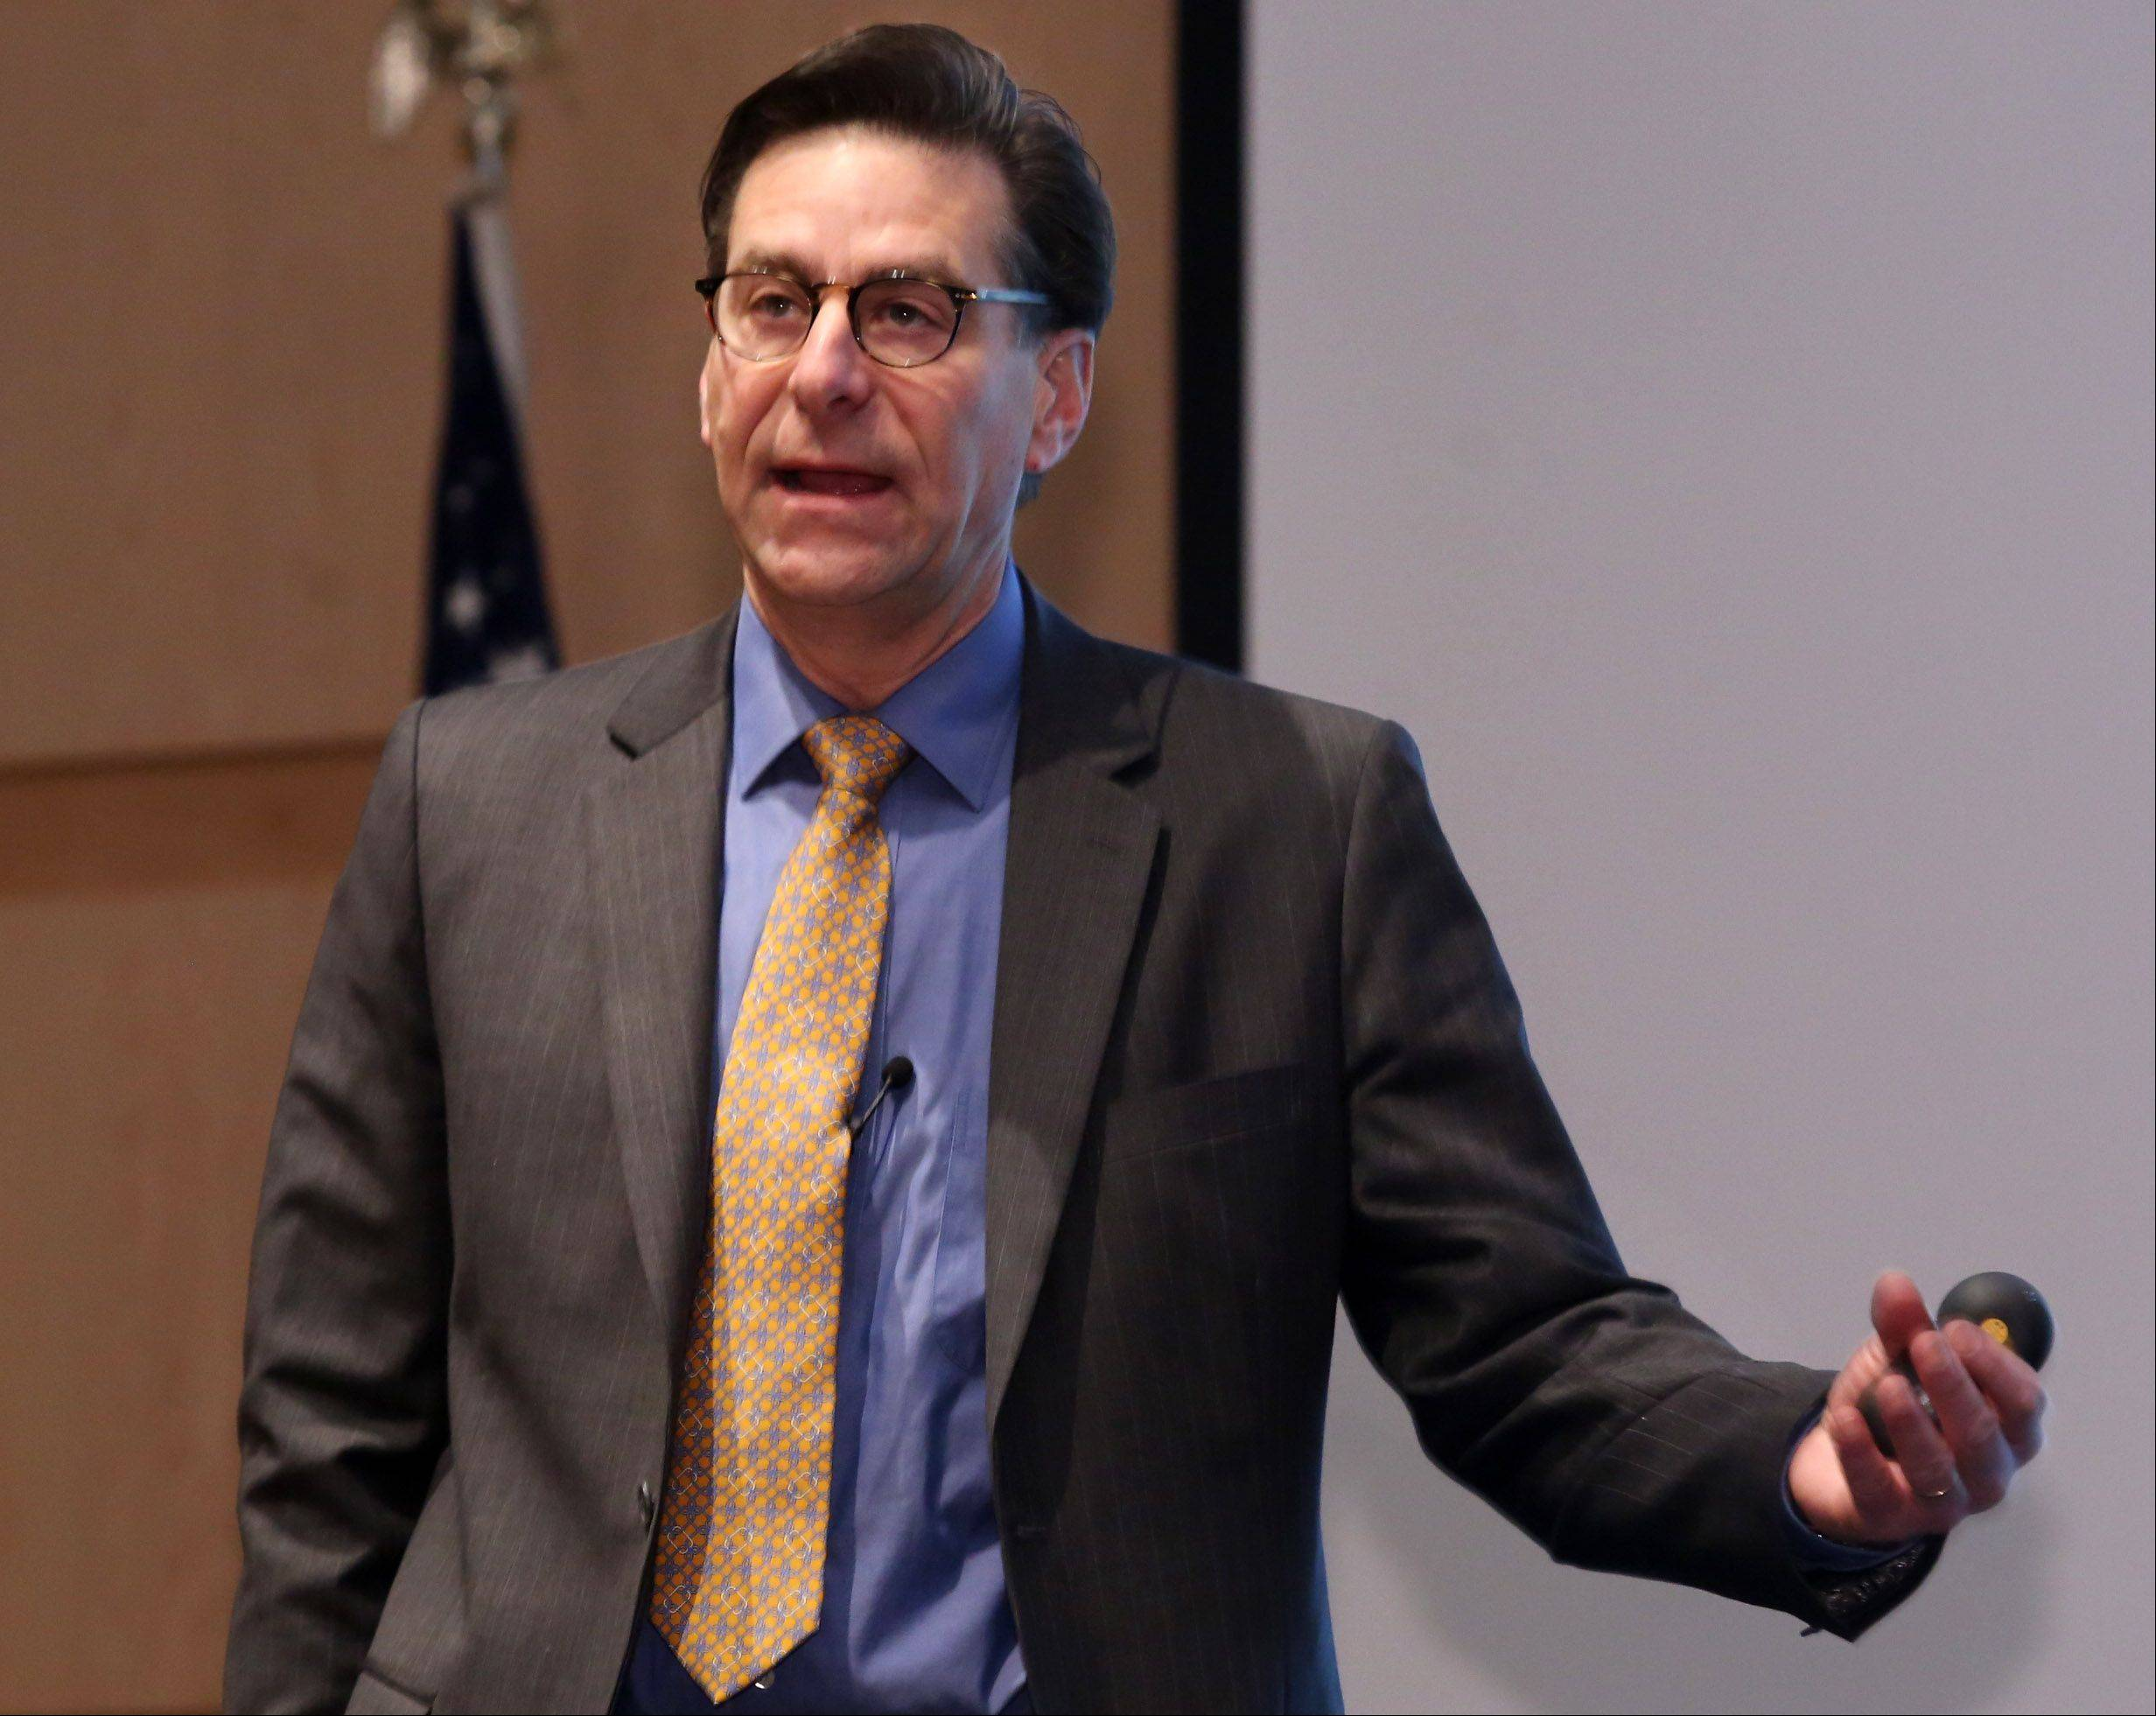 Jack Ablin, chief investment officer for BMO Private Bank, talks about how increasing minimum wage would help businesses make a higher profit at the economic outlook breakfast at the Wojcik Conference Center at Harper College on Thursday in Palatine.